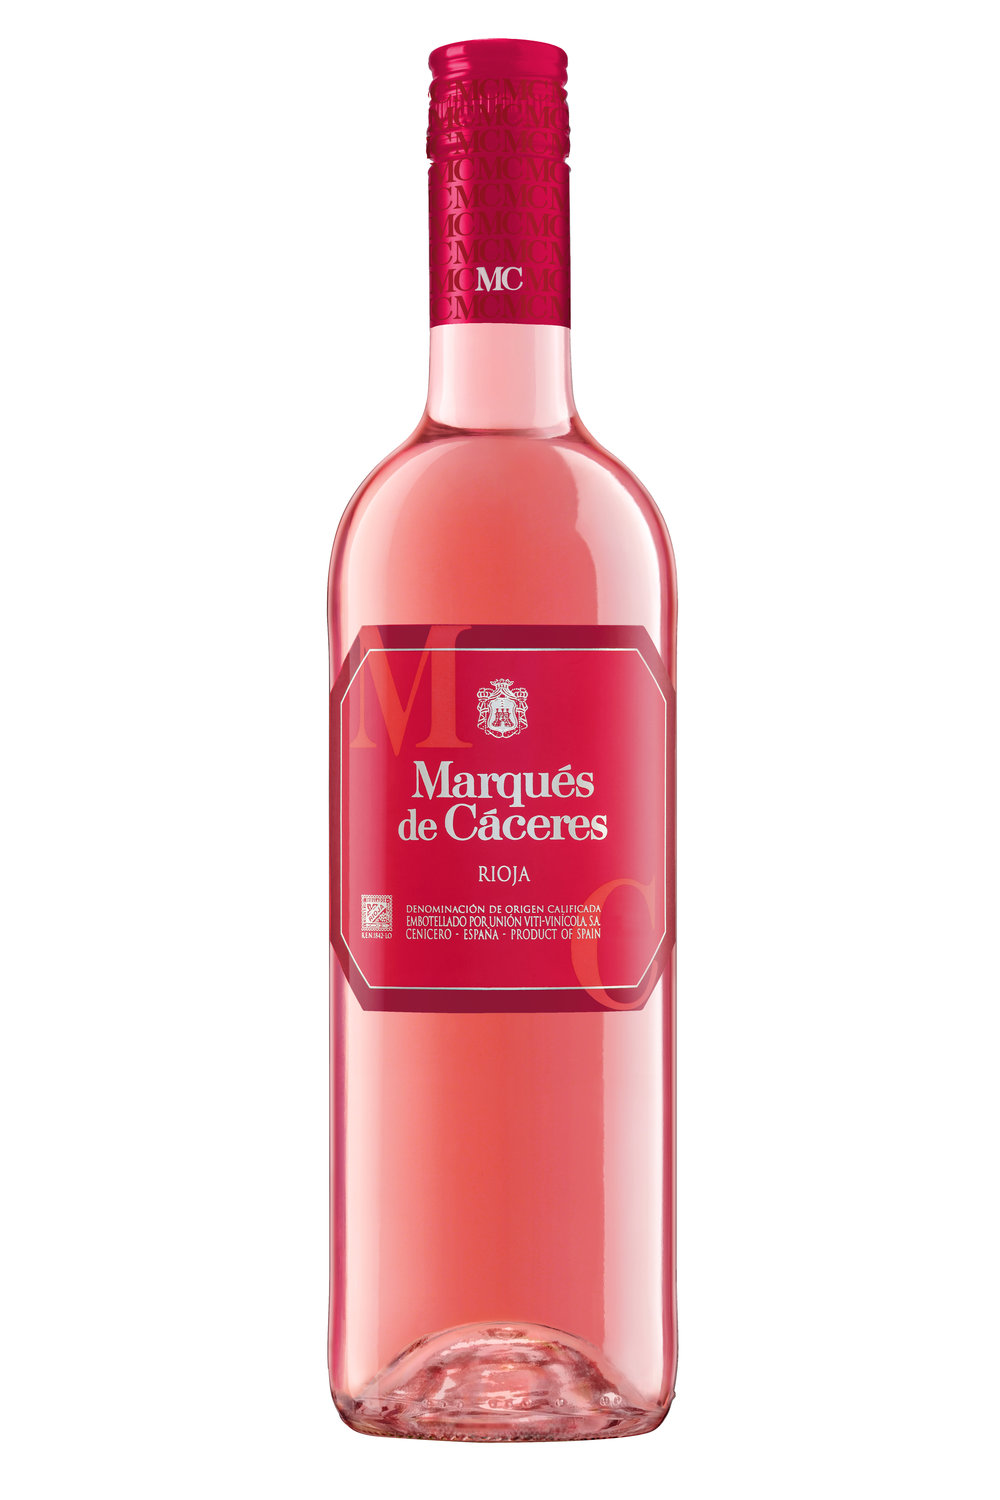 Marques de Caceres Rosé 2015 Bottle.jpg